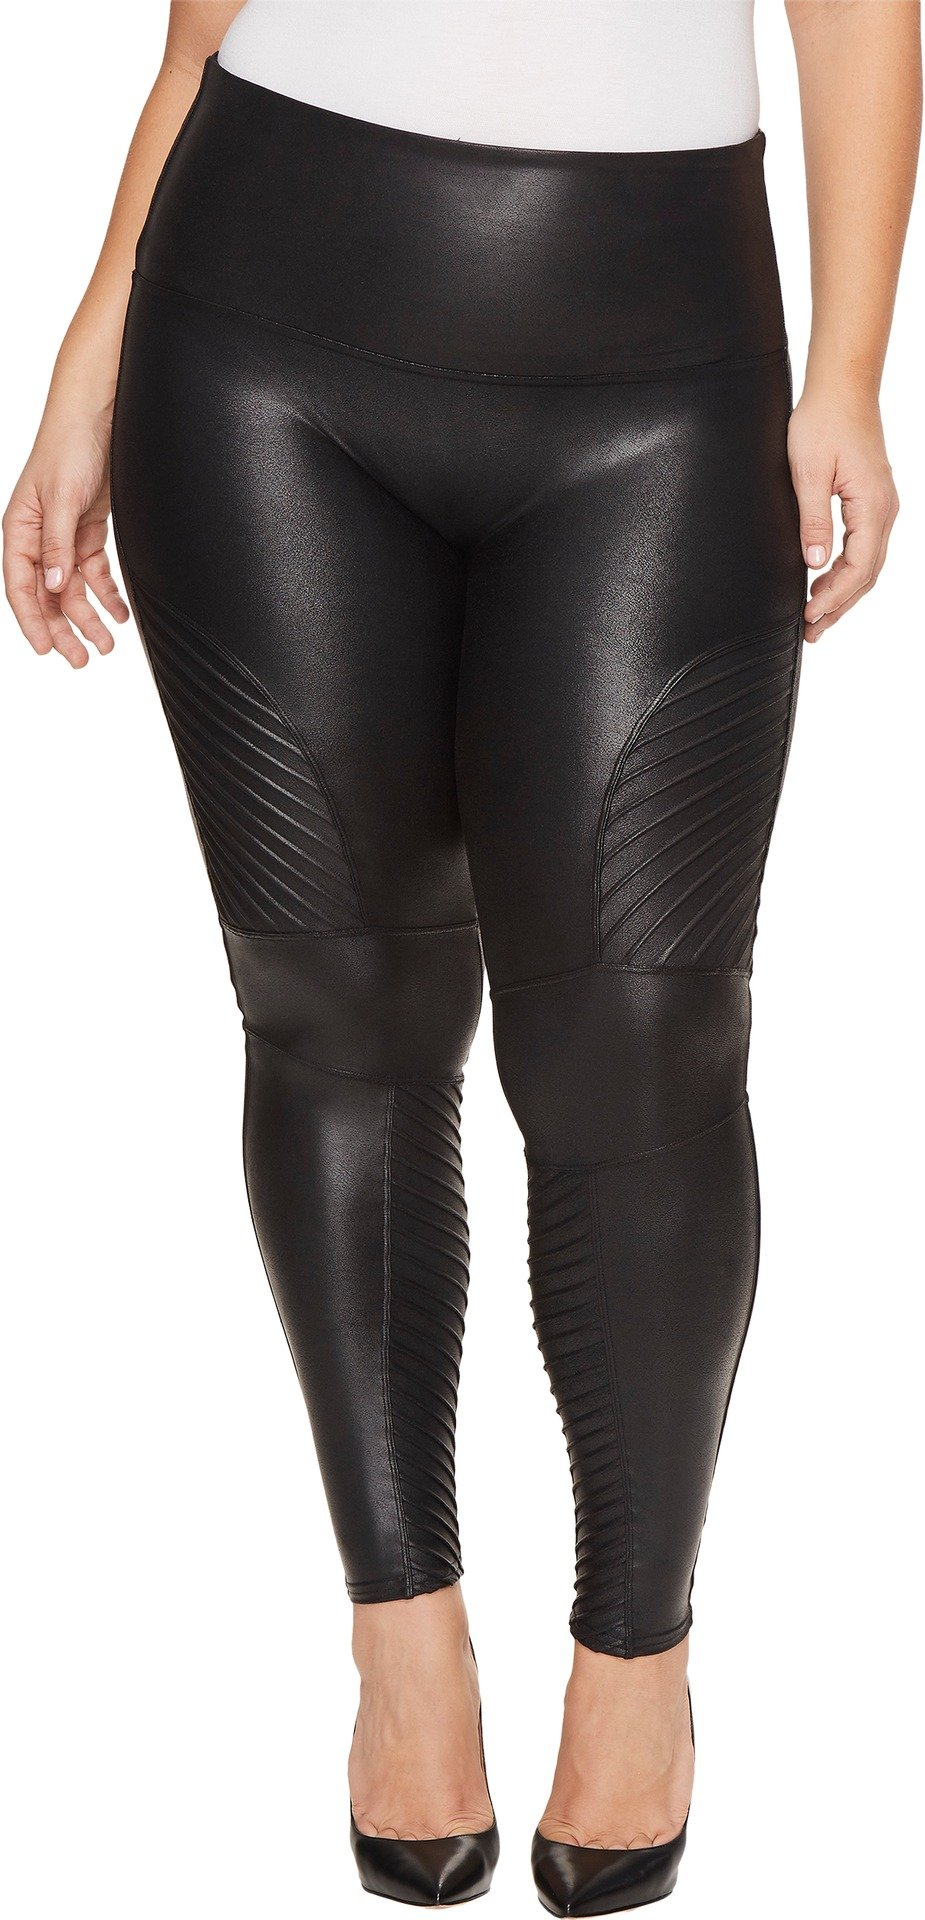 SPANX Plus Faux Leather Moto Leggings, Very Black, 1X